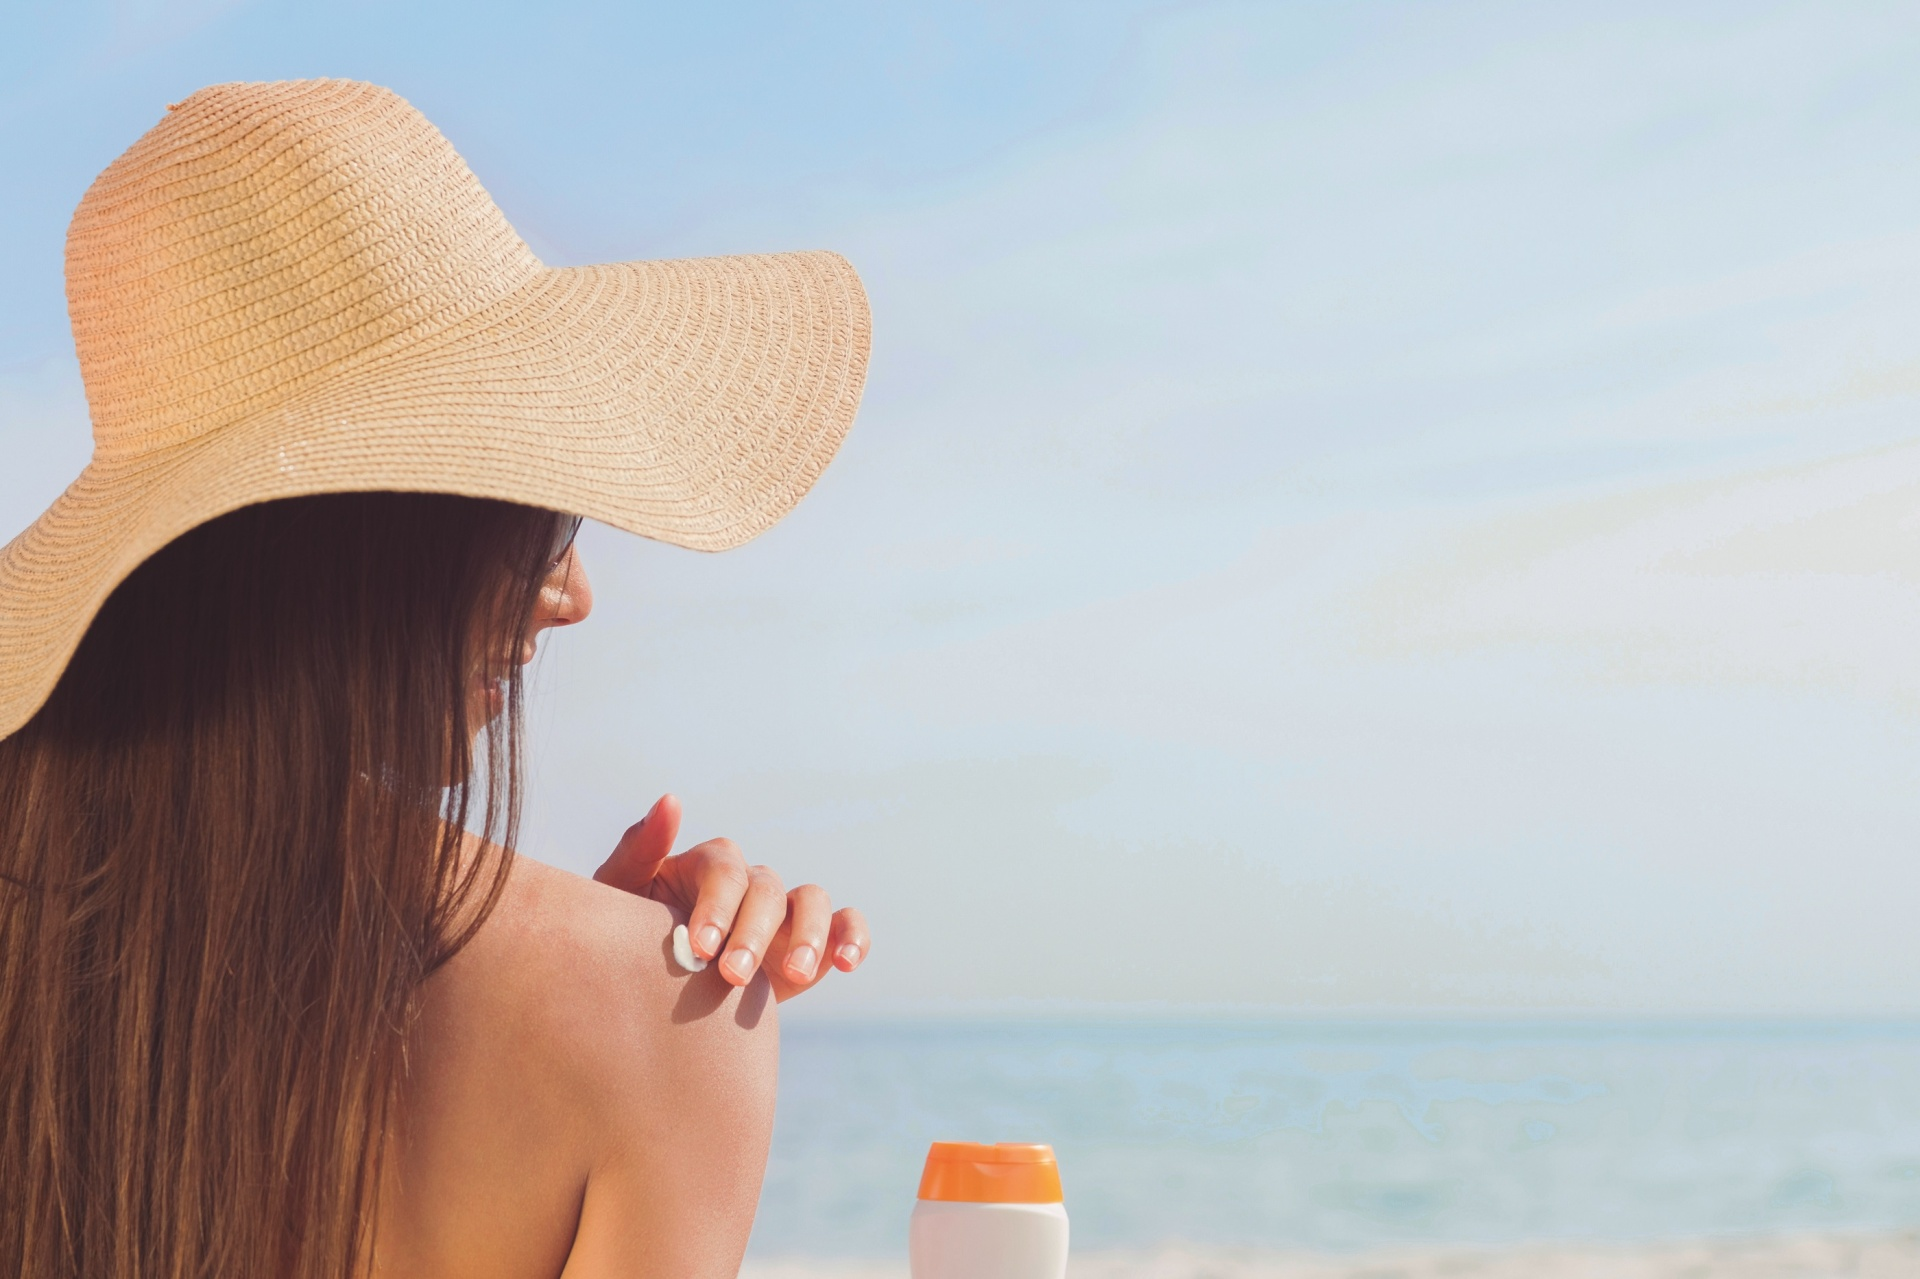 Moisturizing and applying sunscreen are essential to maintaining youthful glowing skin.